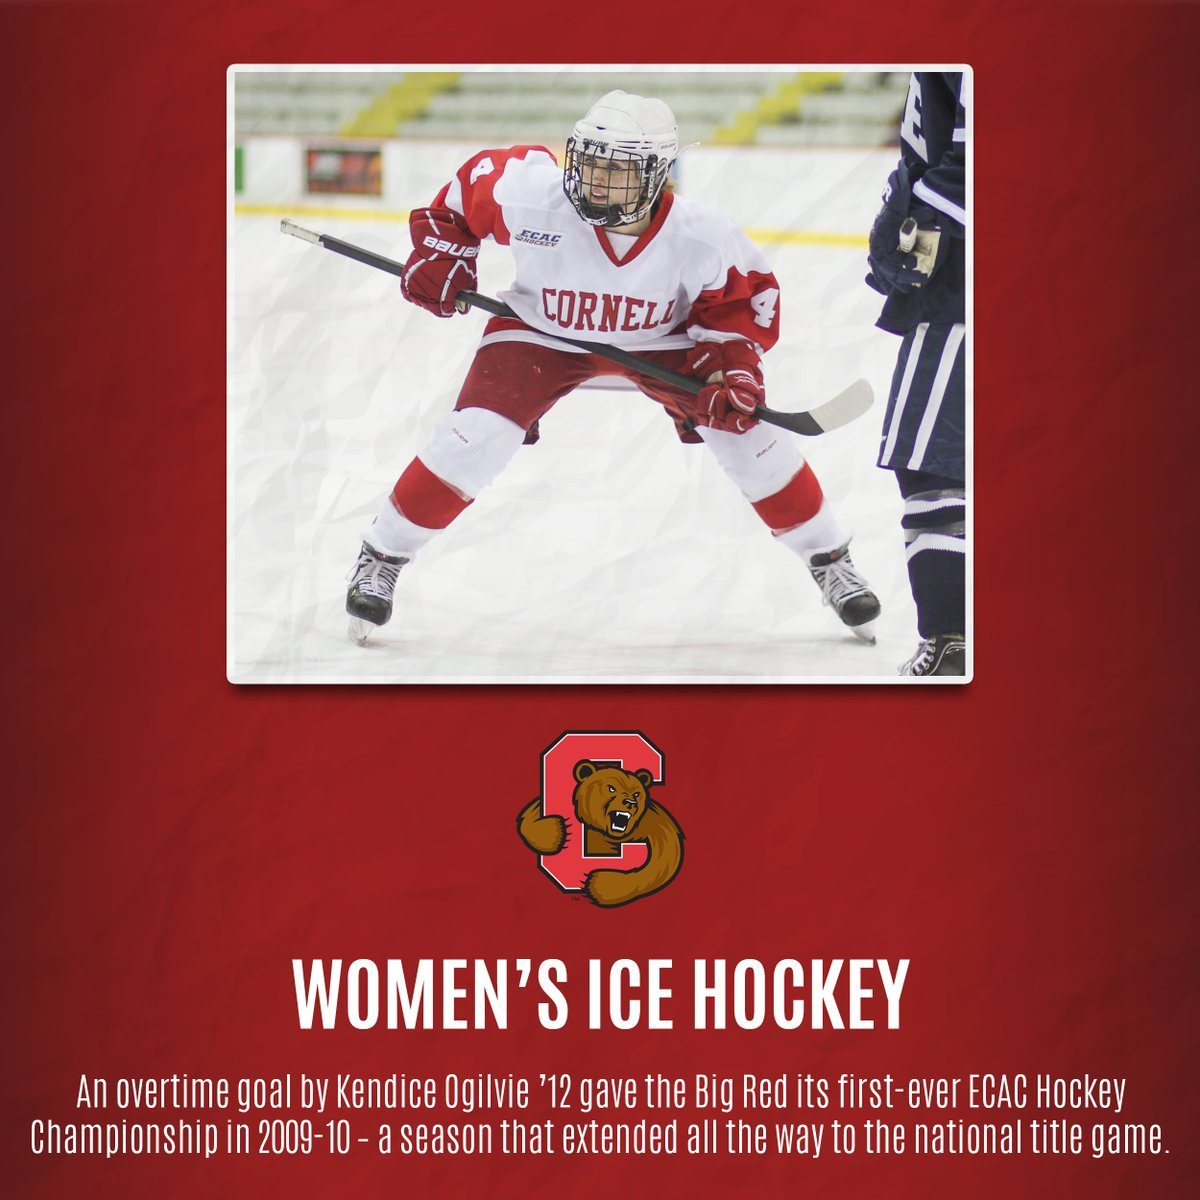 WIH: An overtime goal by Kendice Ogilvie '12 gave @CornellWHockey its first-ever ECAC Hockey Championship in 2009-10 – a season that extended all the way to the national title game. #YellCornell https://t.co/c034ZYZoAR